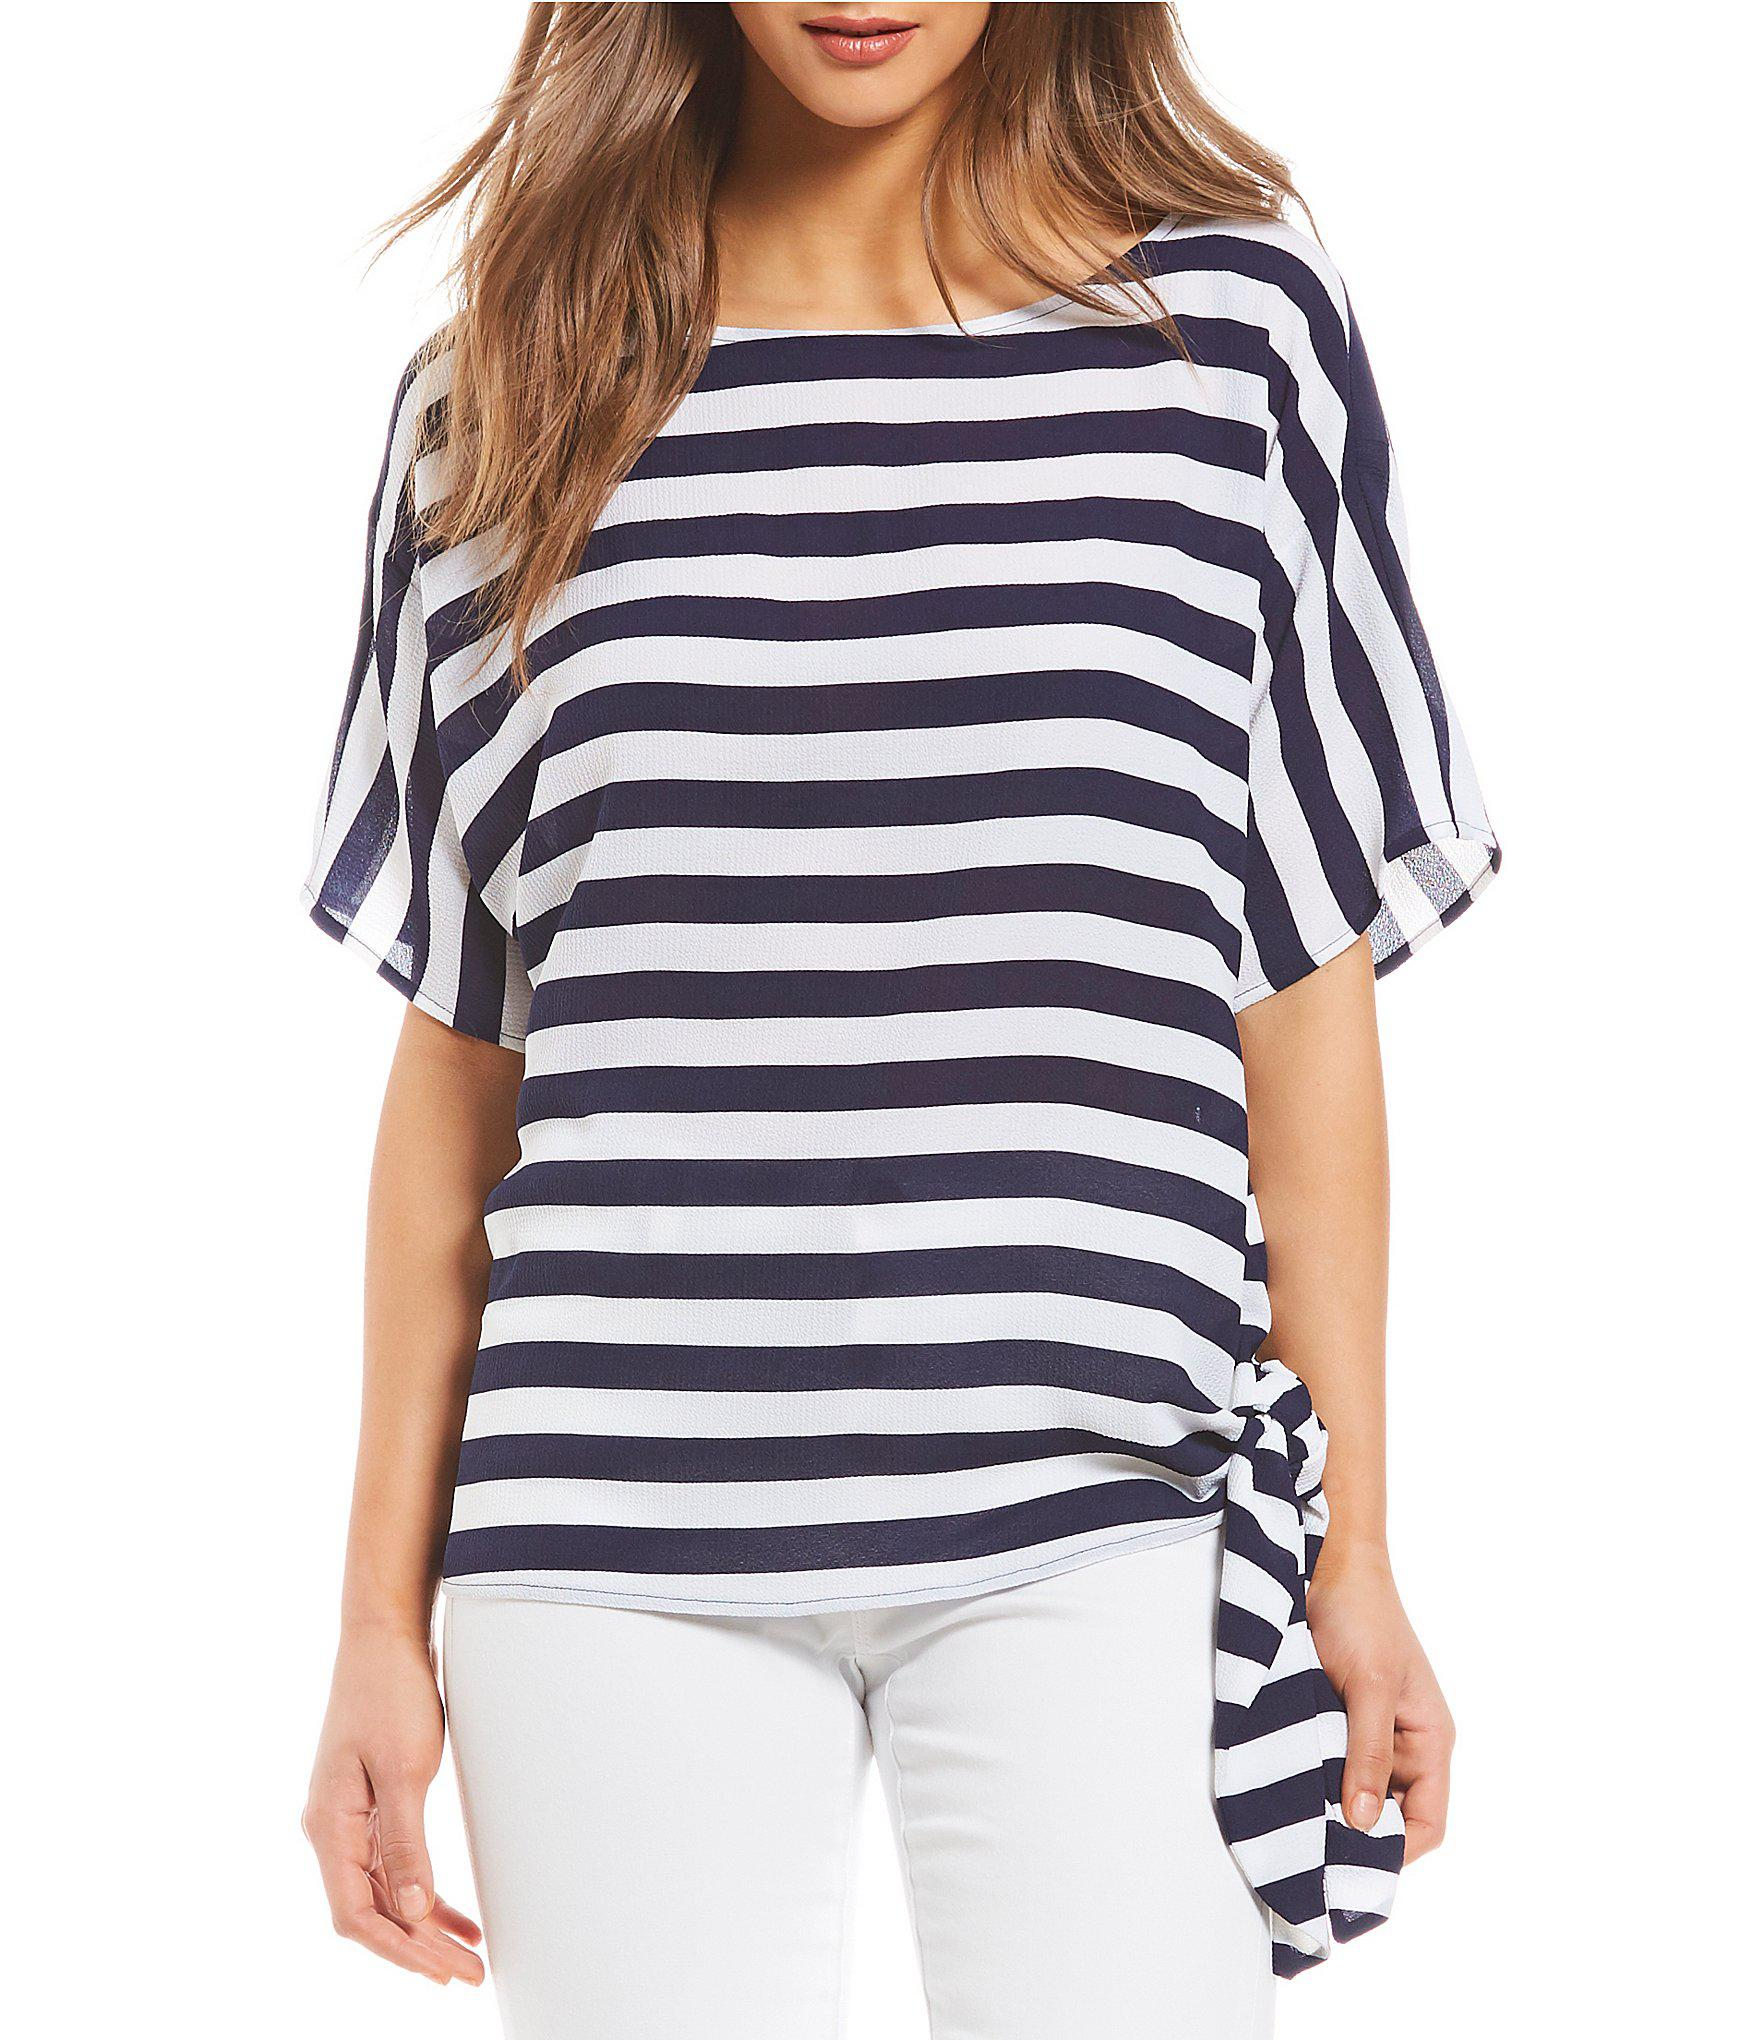 421a3b853ad Lyst - Michael Michael Kors Graphic Stripe Print Side-tie Top in Blue